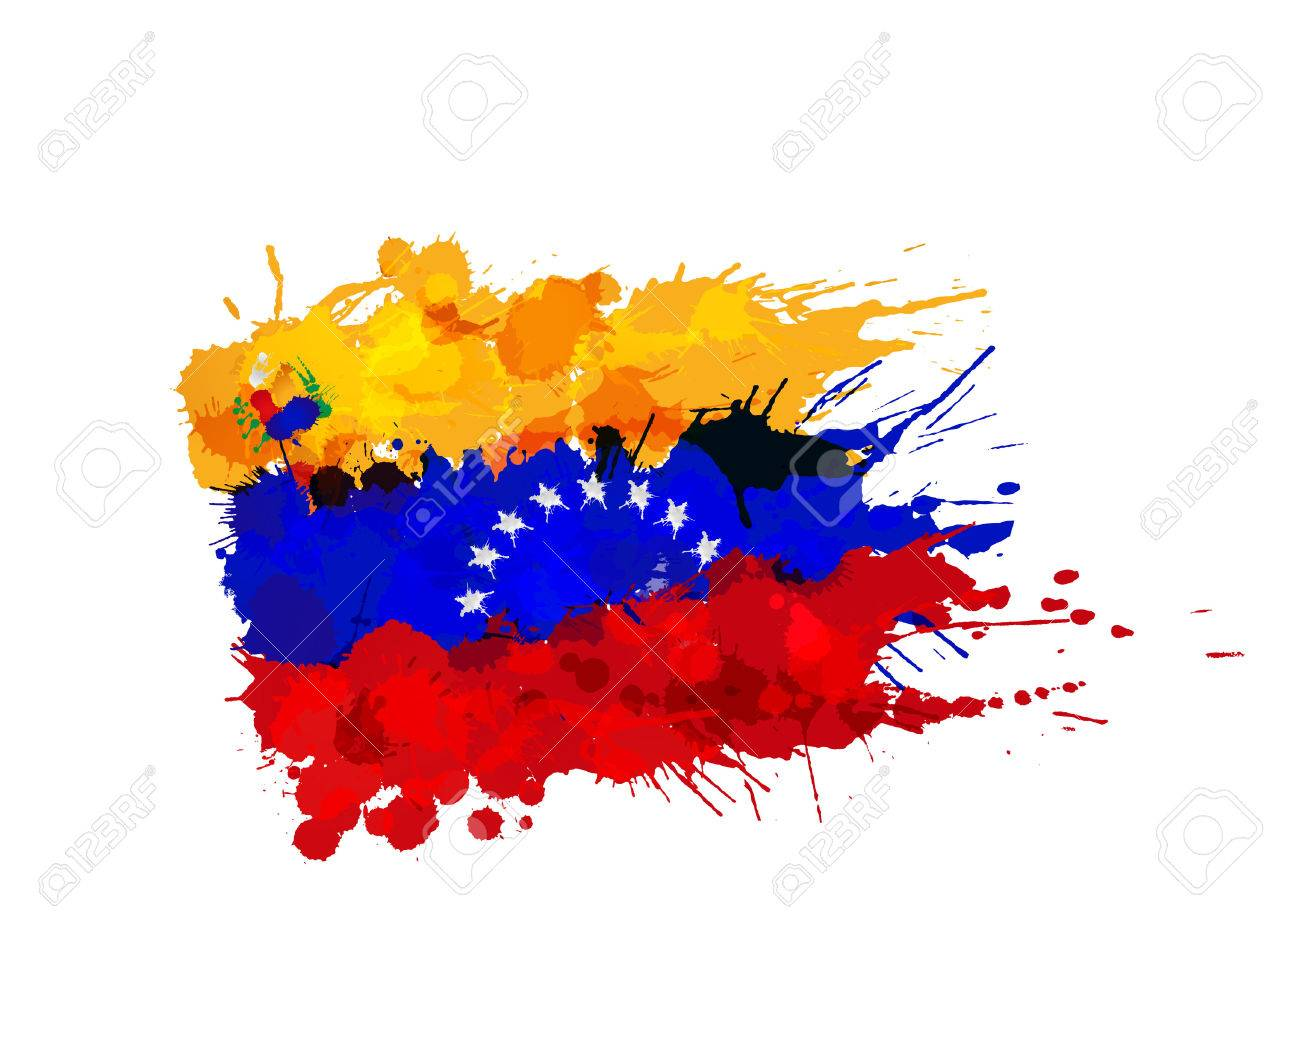 Flag Of Venezuela Made Of Colorful Splashes Royalty Free Cliparts